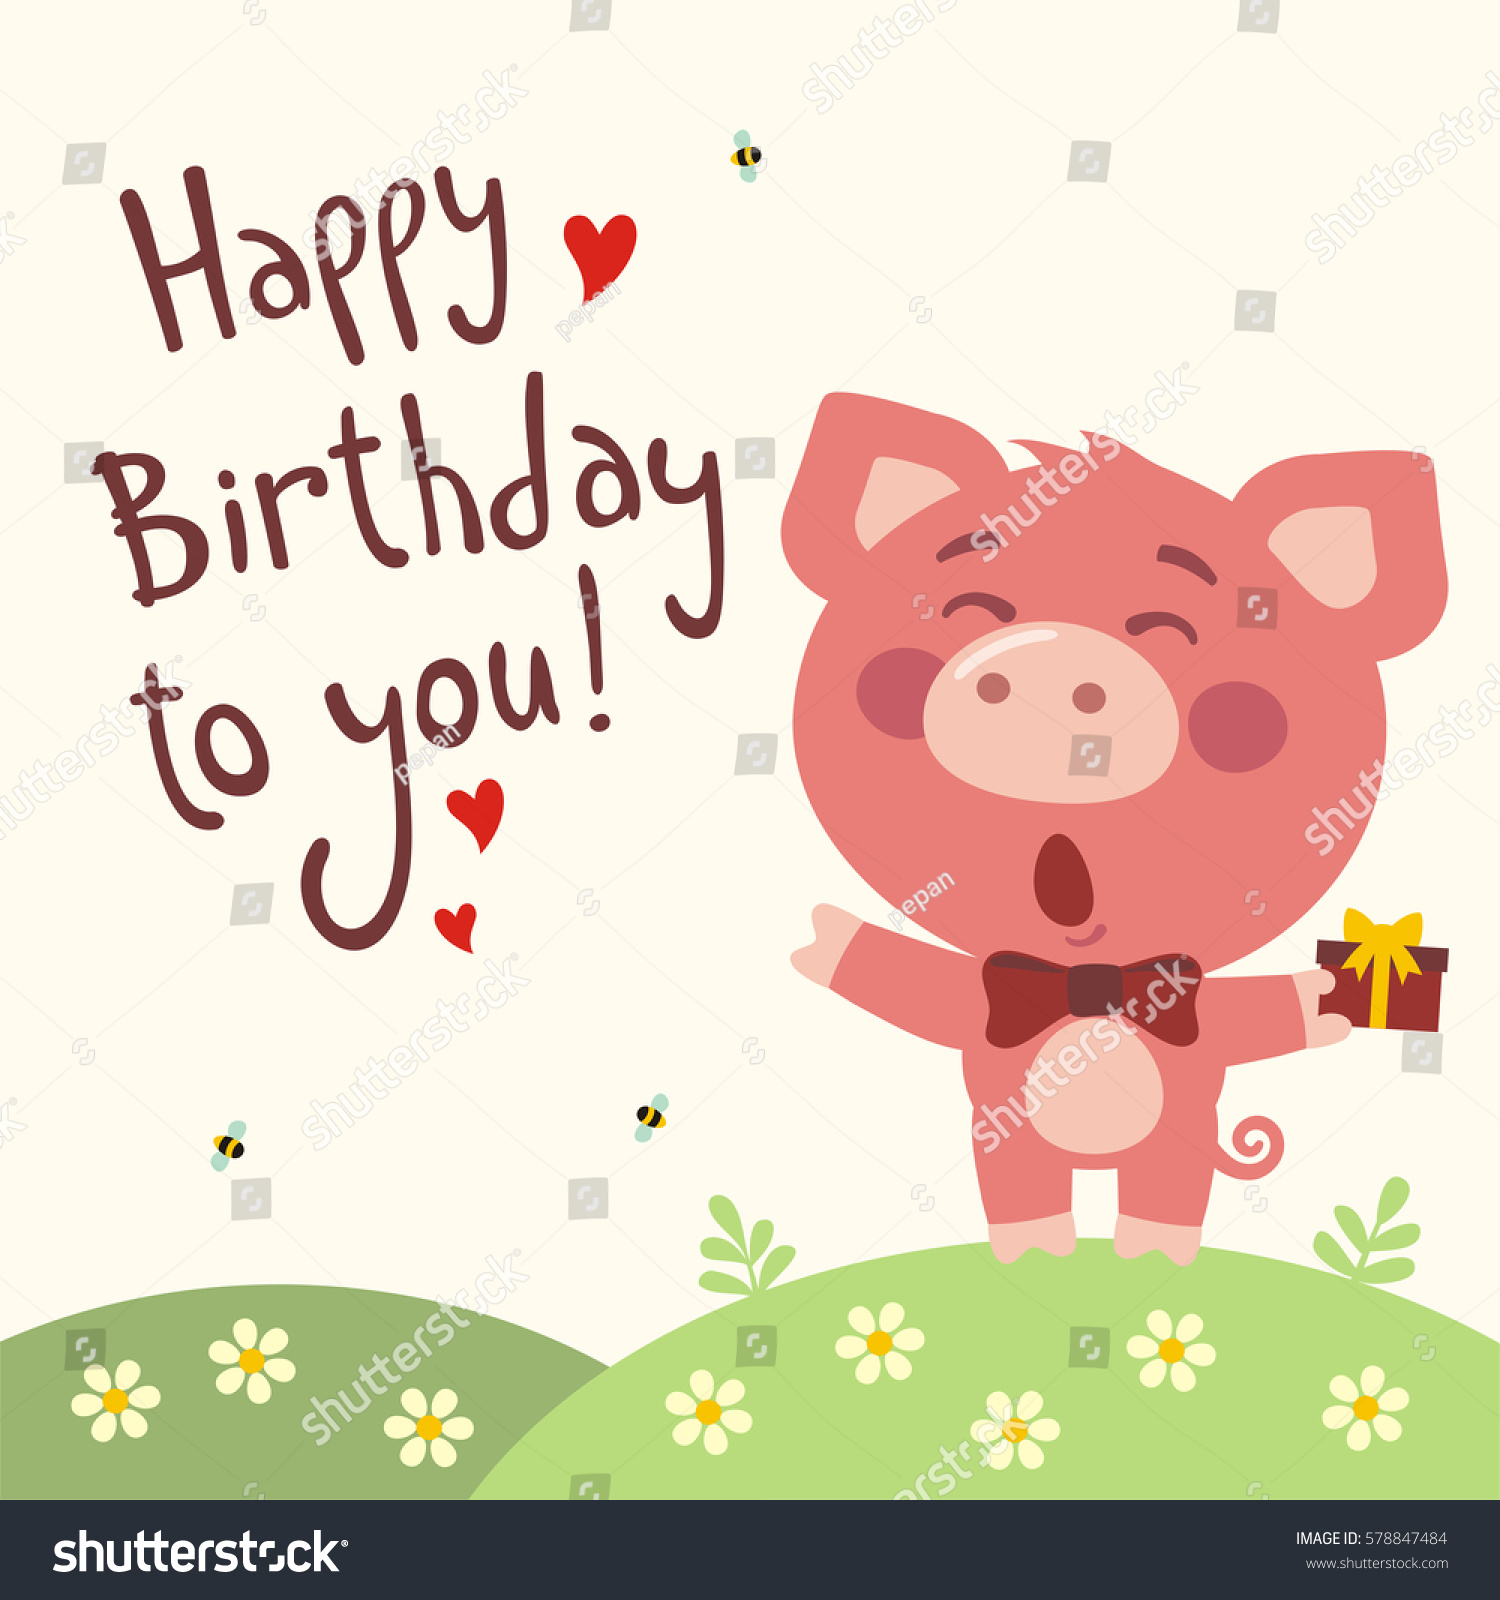 Funny Pig Sings Song Happy Birthday To You Greeting Card In Cartoon Style